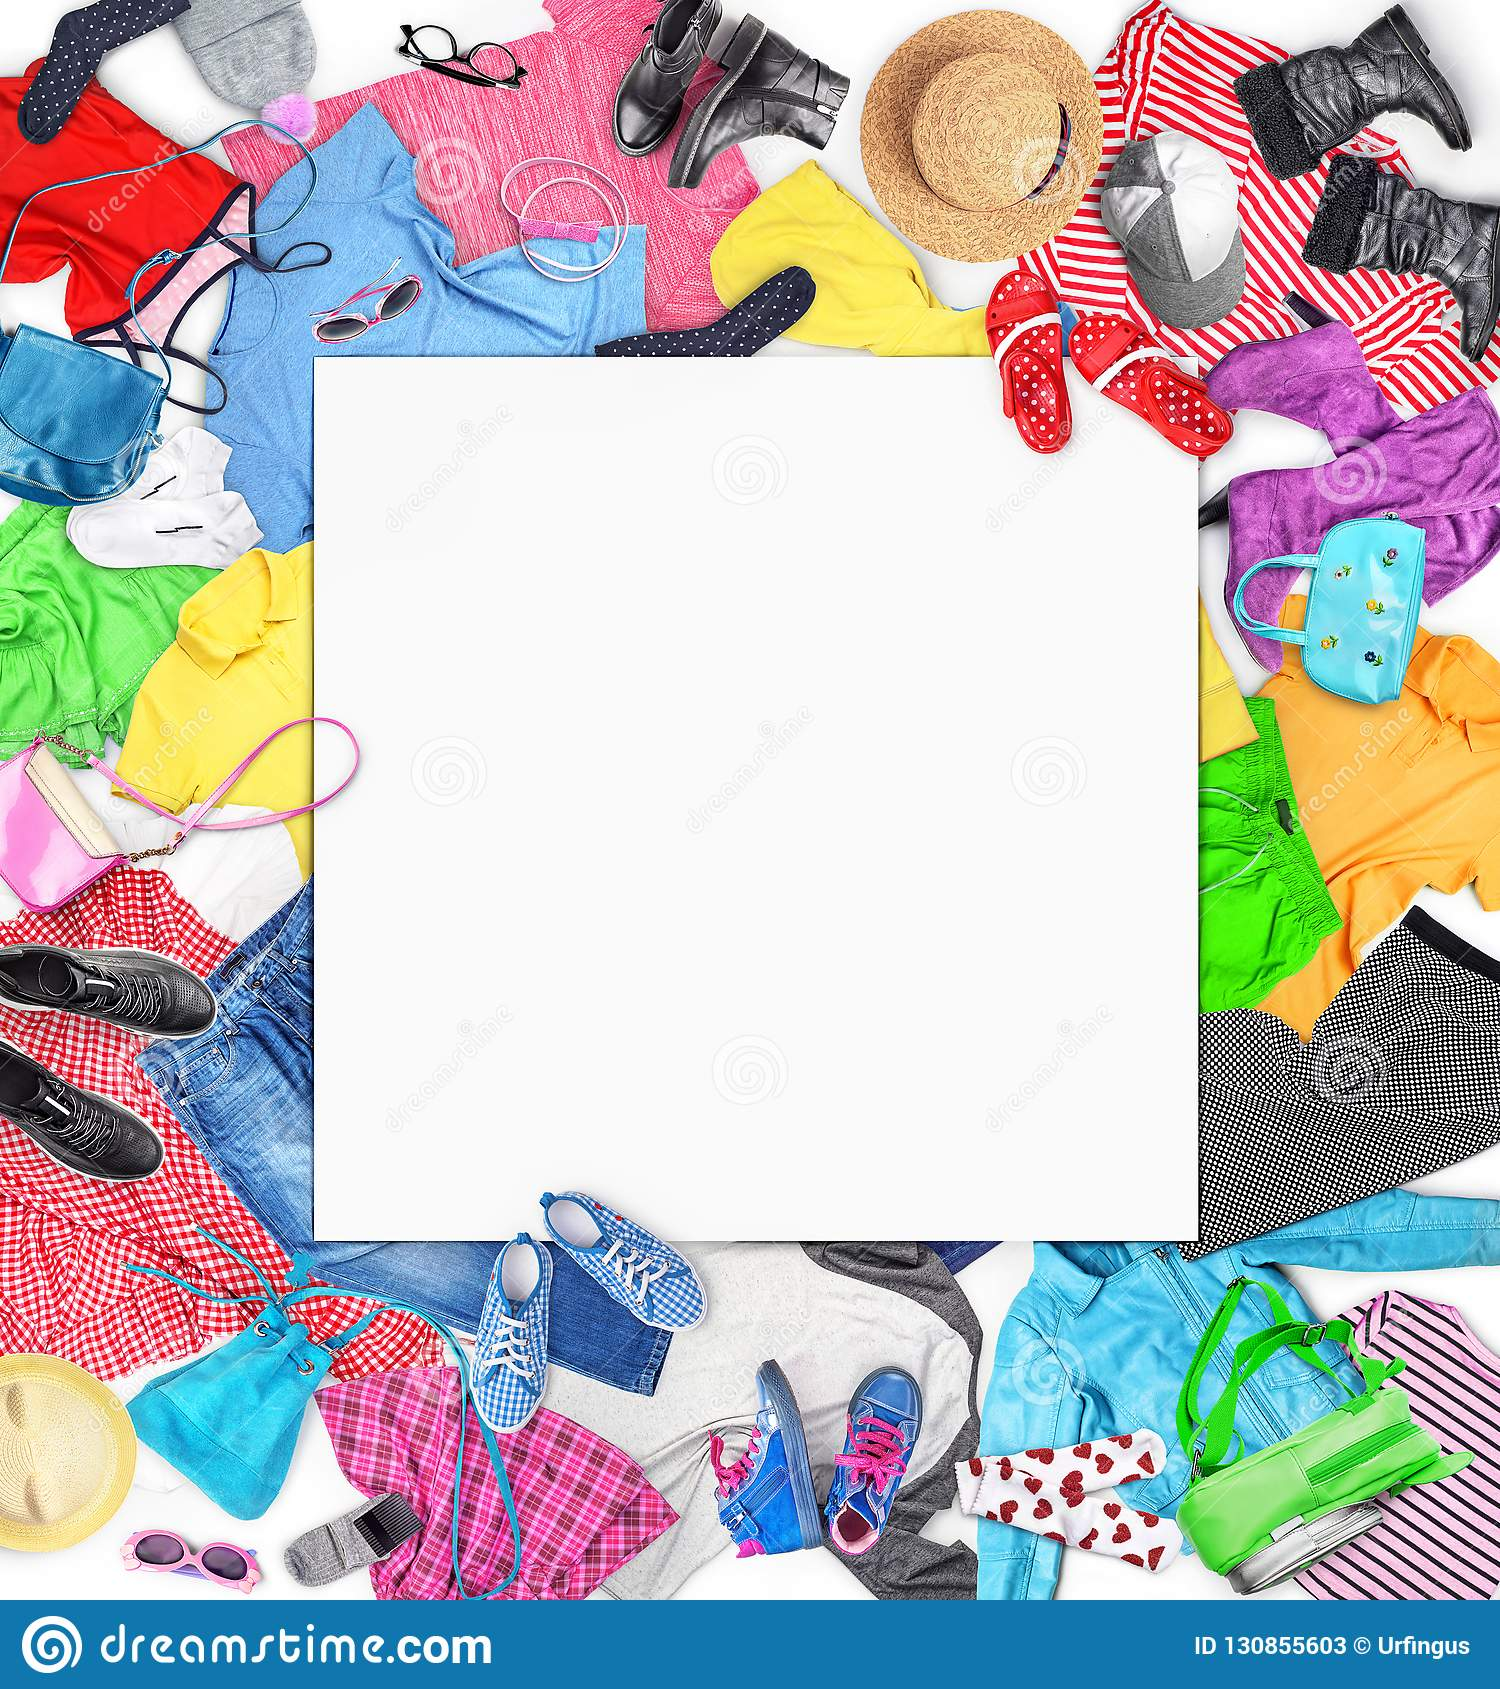 Clothing Composition With Clothes For Men Women And Children Stock Image Image Of Flat Object 130855603